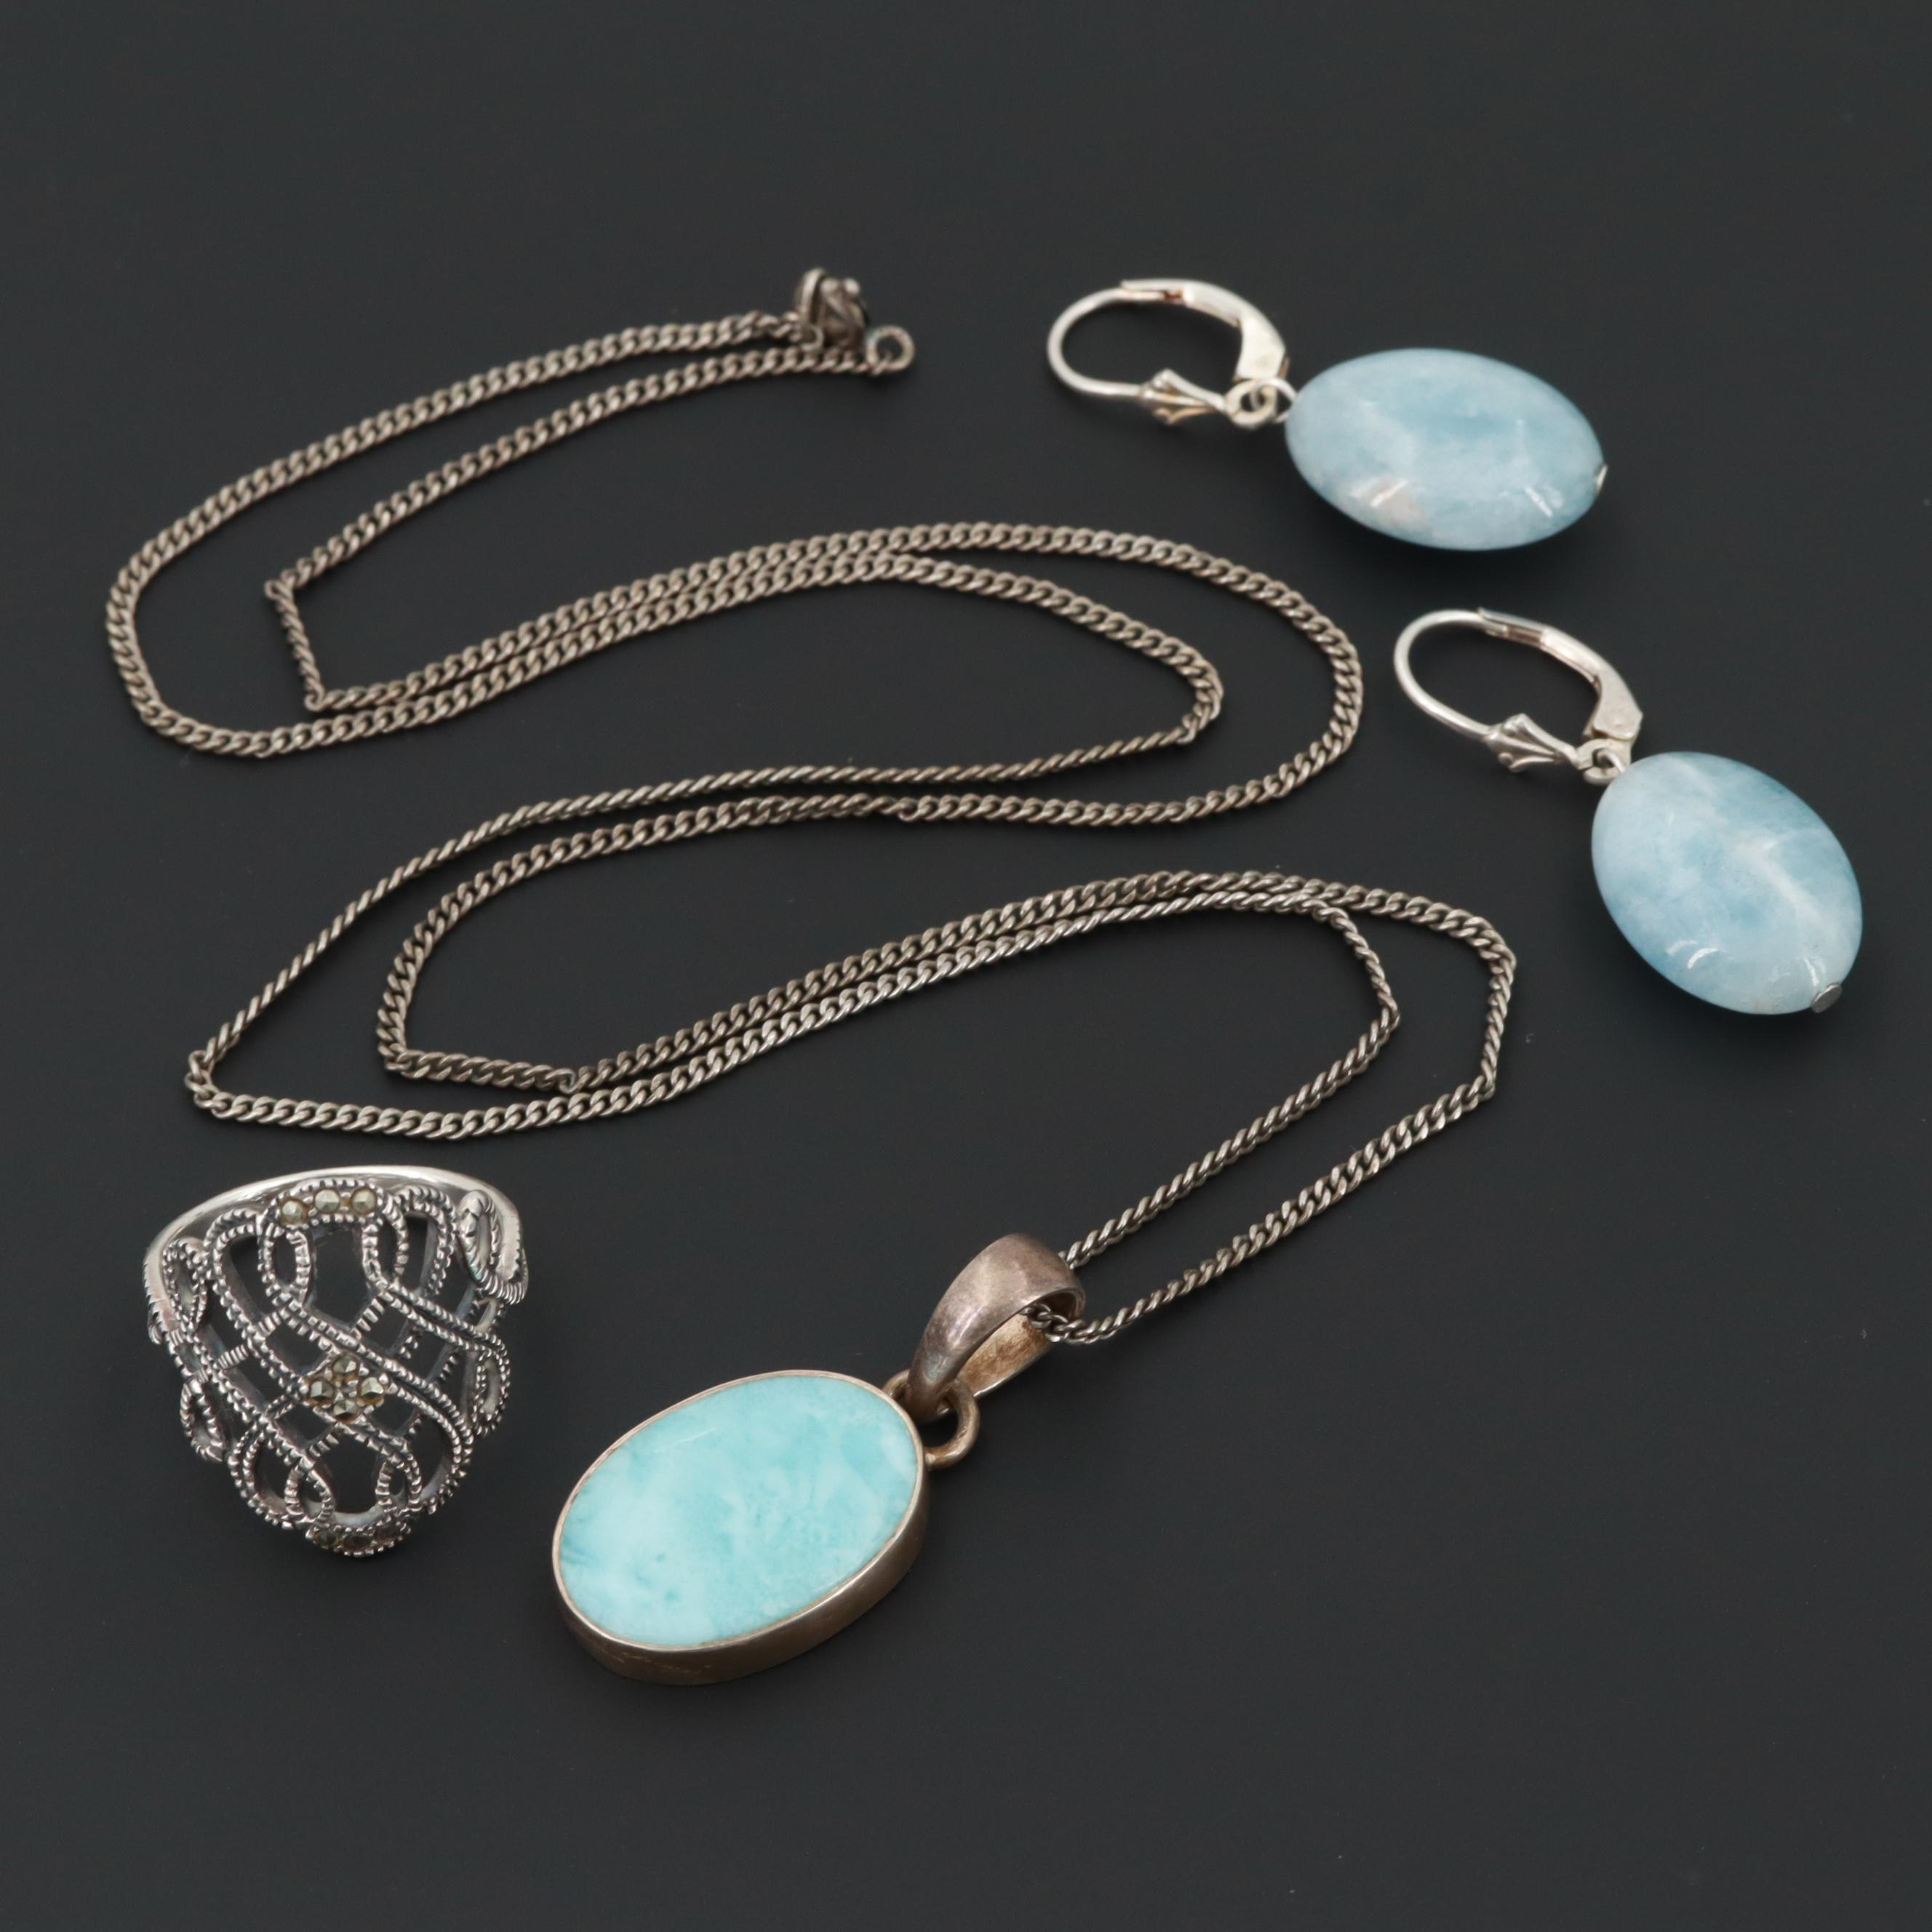 Sterling Silver Blue Beryl, Larimar and Marcasite Necklace, Earrings and Ring